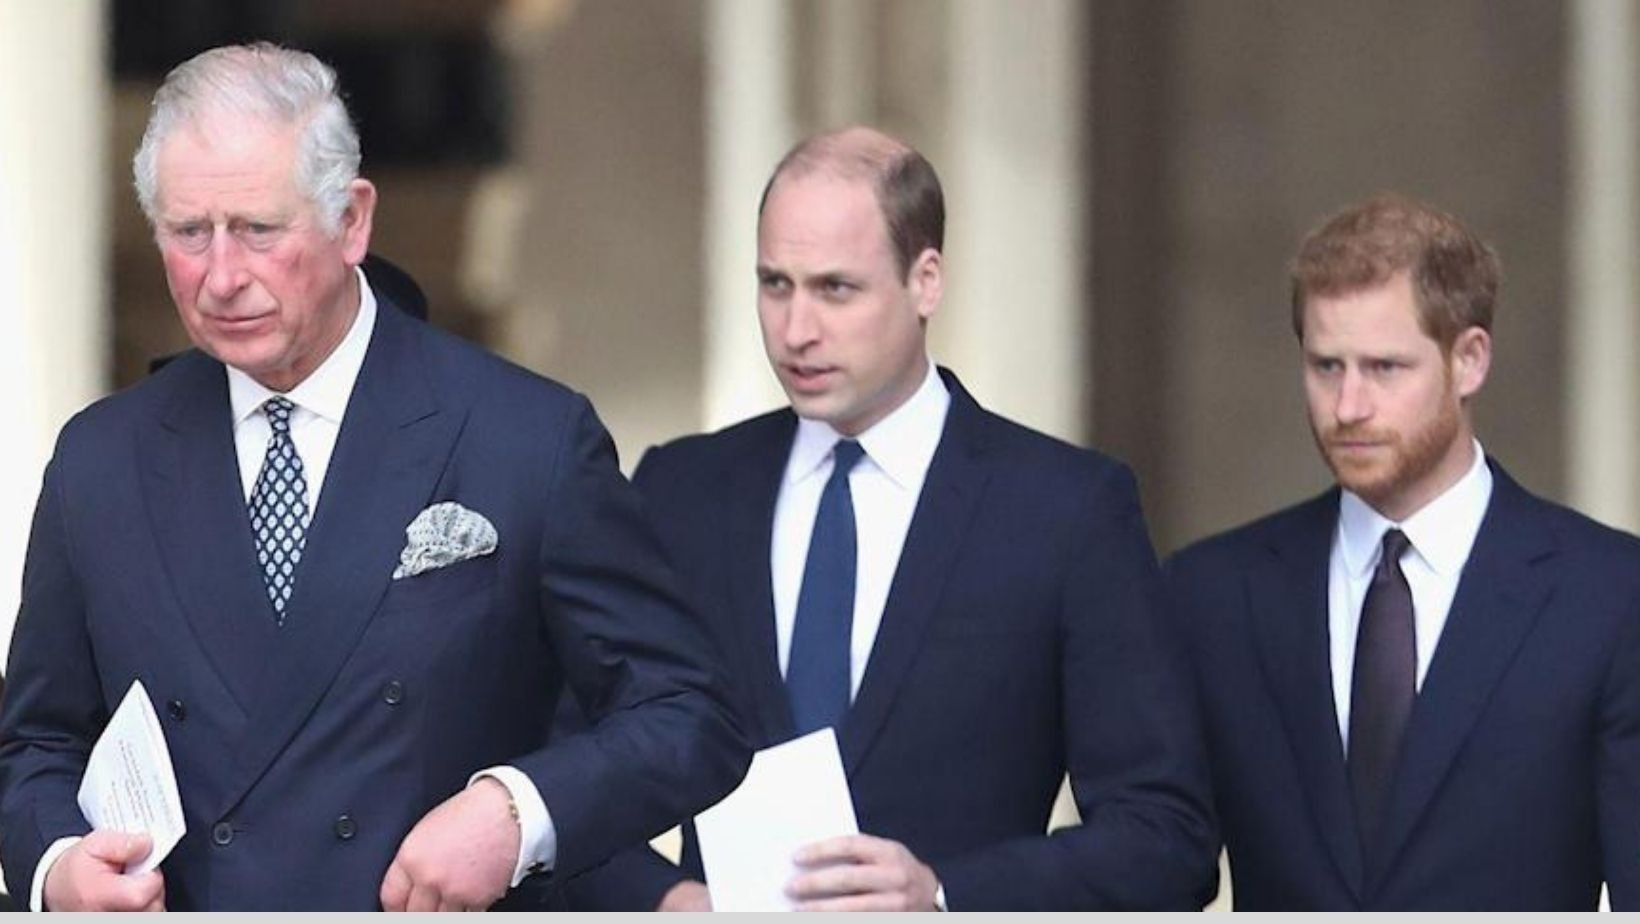 2 102.jpg?resize=1200,630 - Prince Harry 'Ambushed' By Charles & William With A Family Meeting During His Brief Stay In The UK